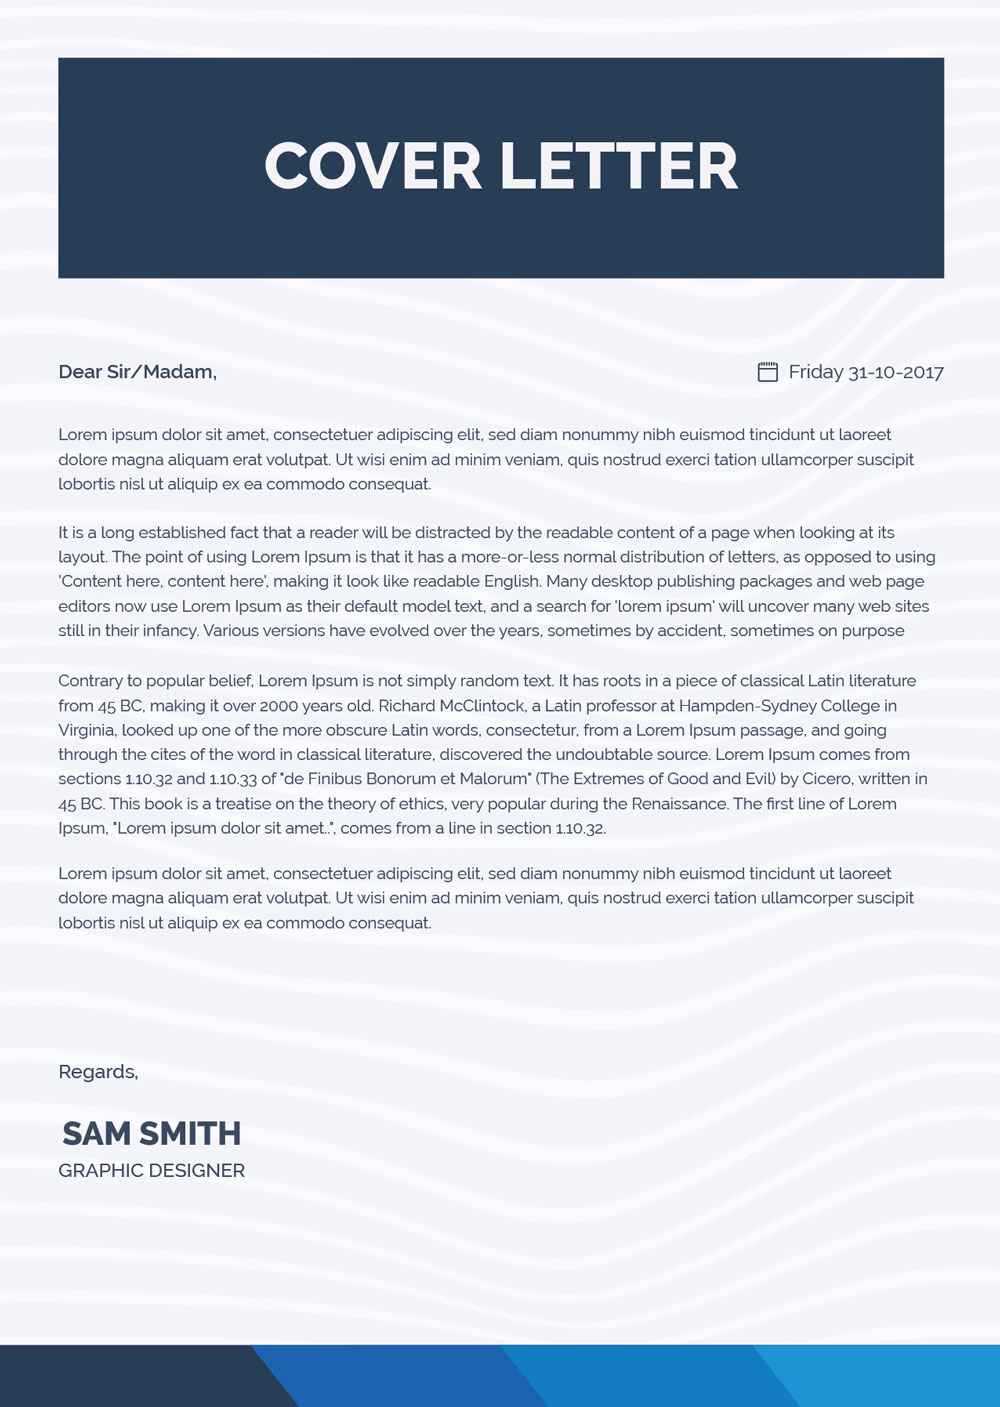 free simple cover letter for resume